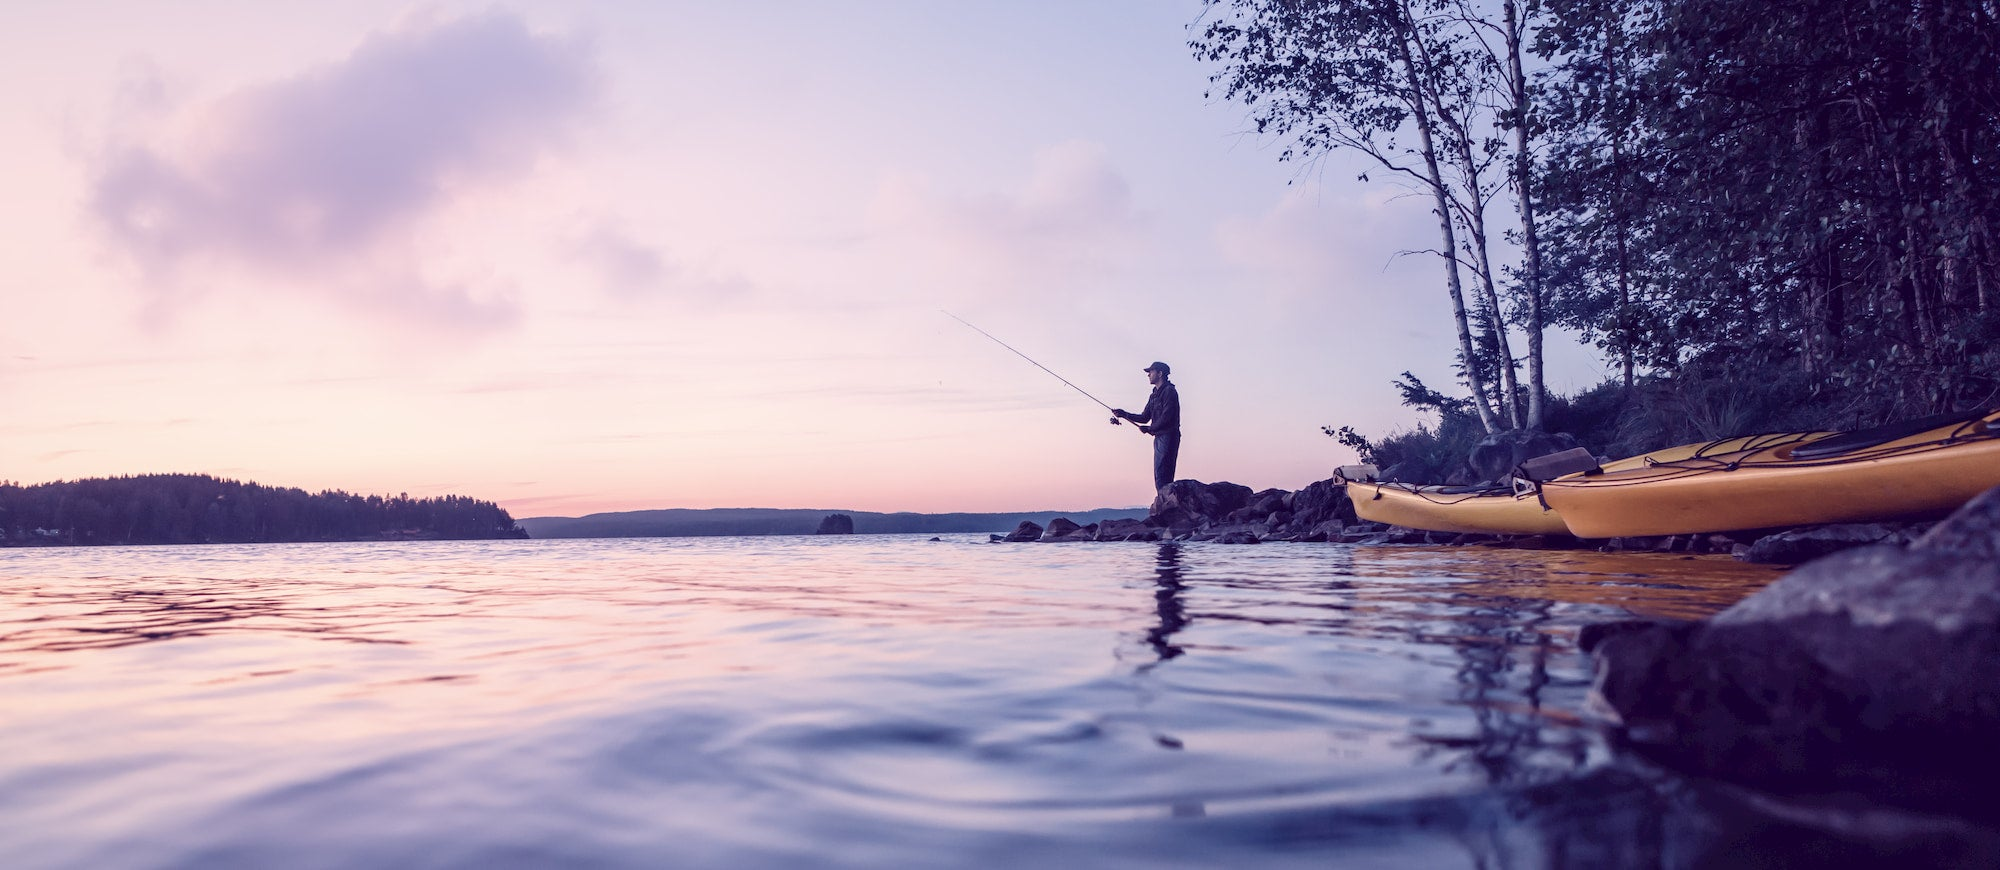 The Top 10 Places to Go Fishing in Illinois + Nearby Camping